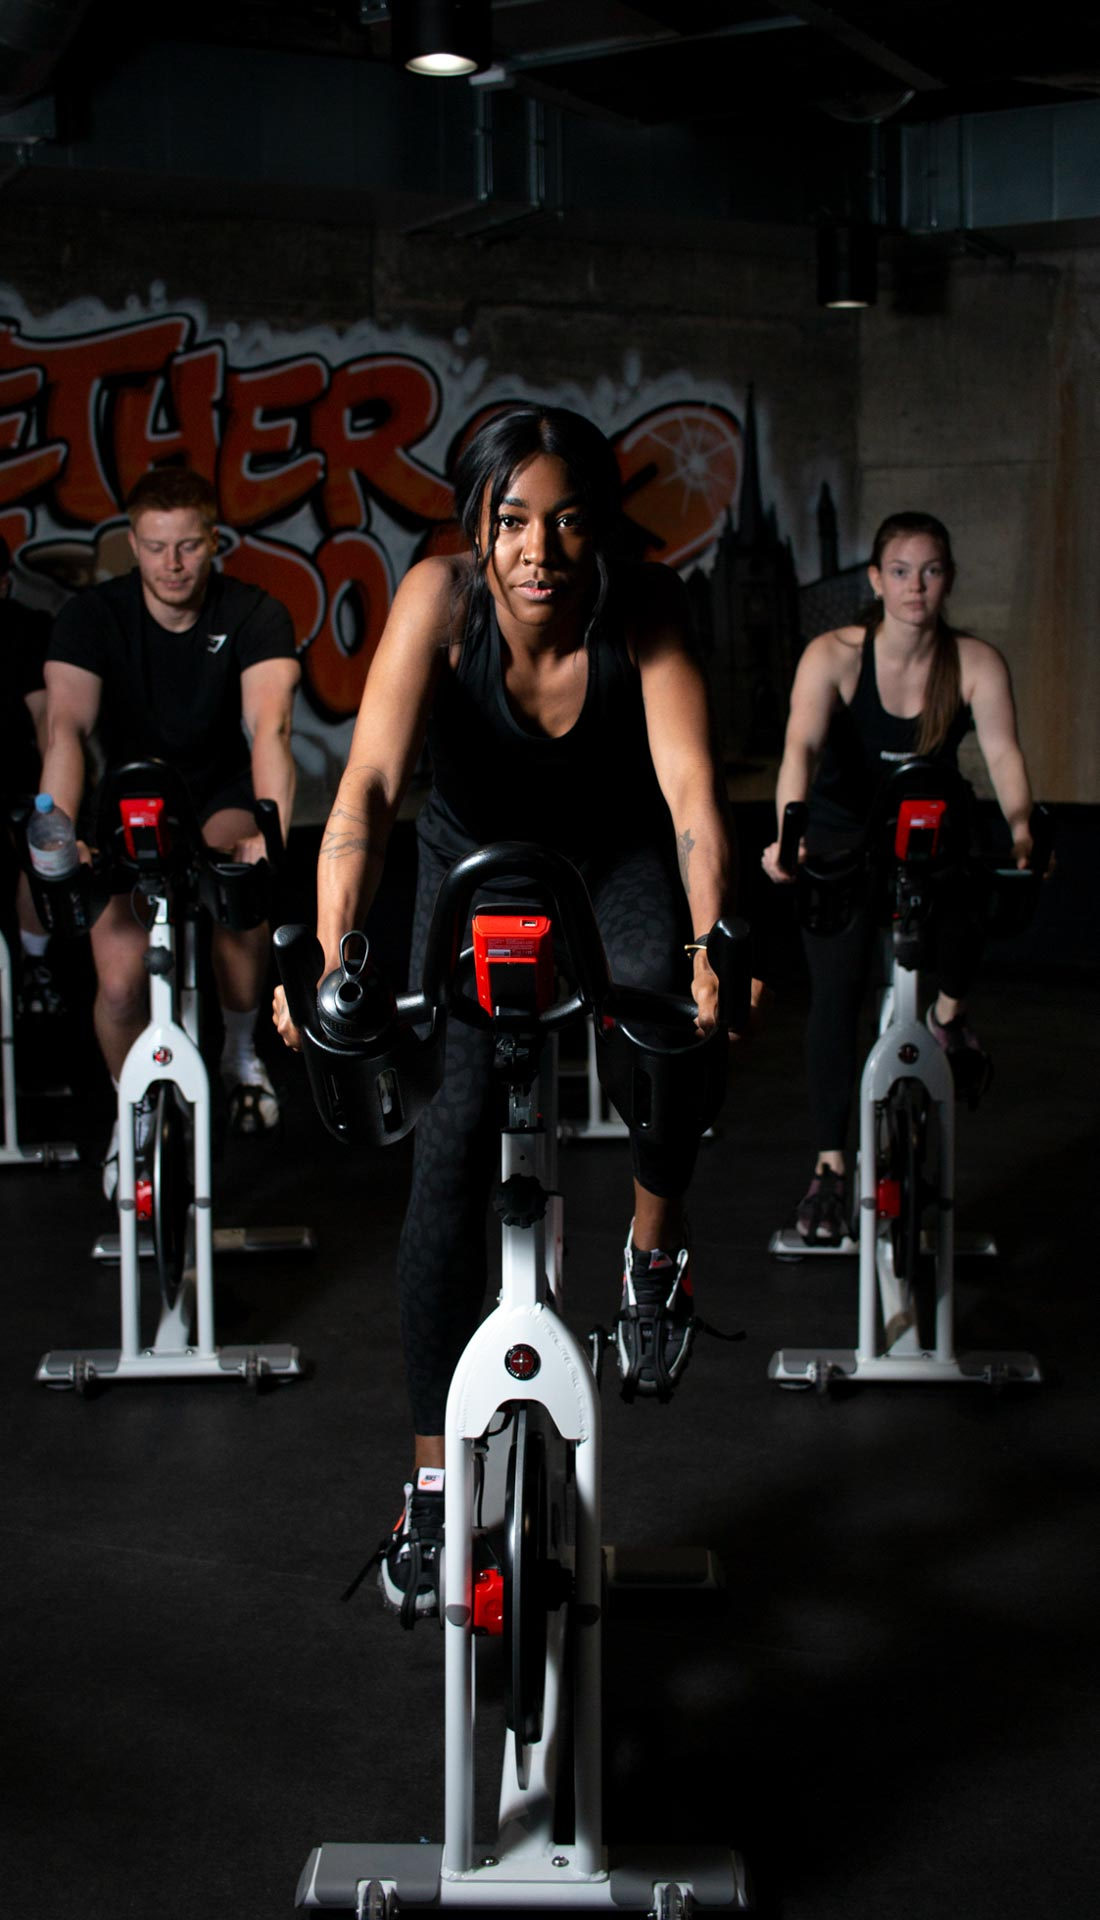 Fitness cycling class. Commercial photography for Birmingham MK Health Hub